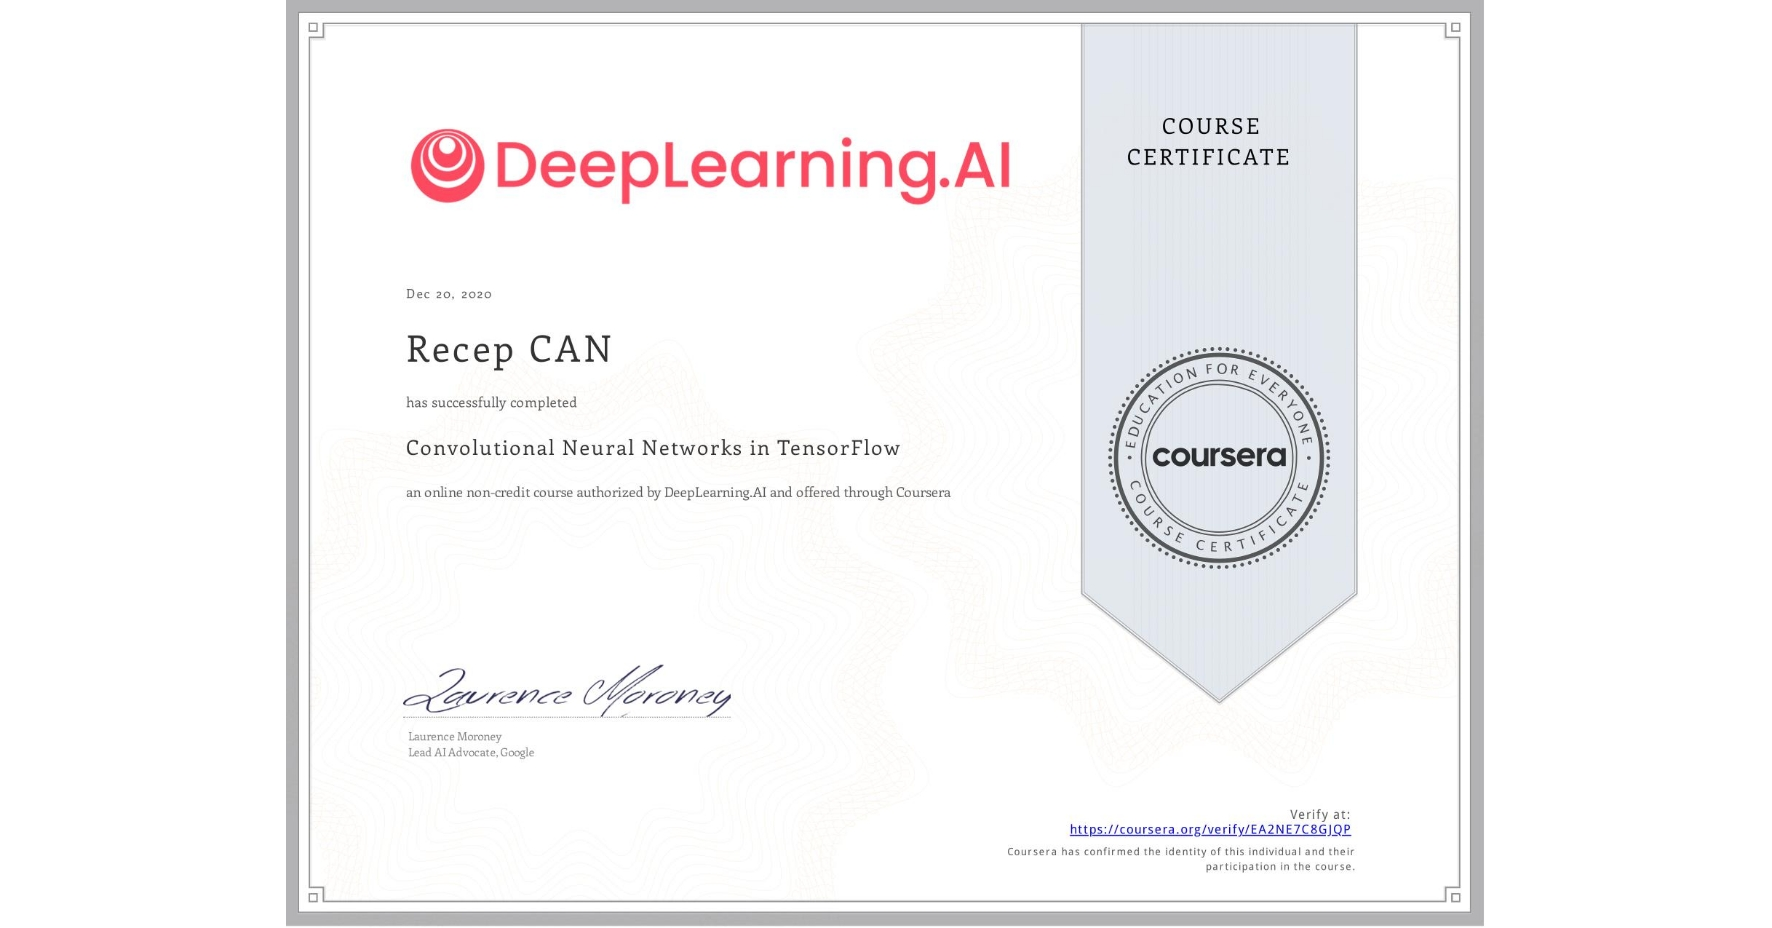 View certificate for Recep CAN, Convolutional Neural Networks in TensorFlow, an online non-credit course authorized by DeepLearning.AI and offered through Coursera